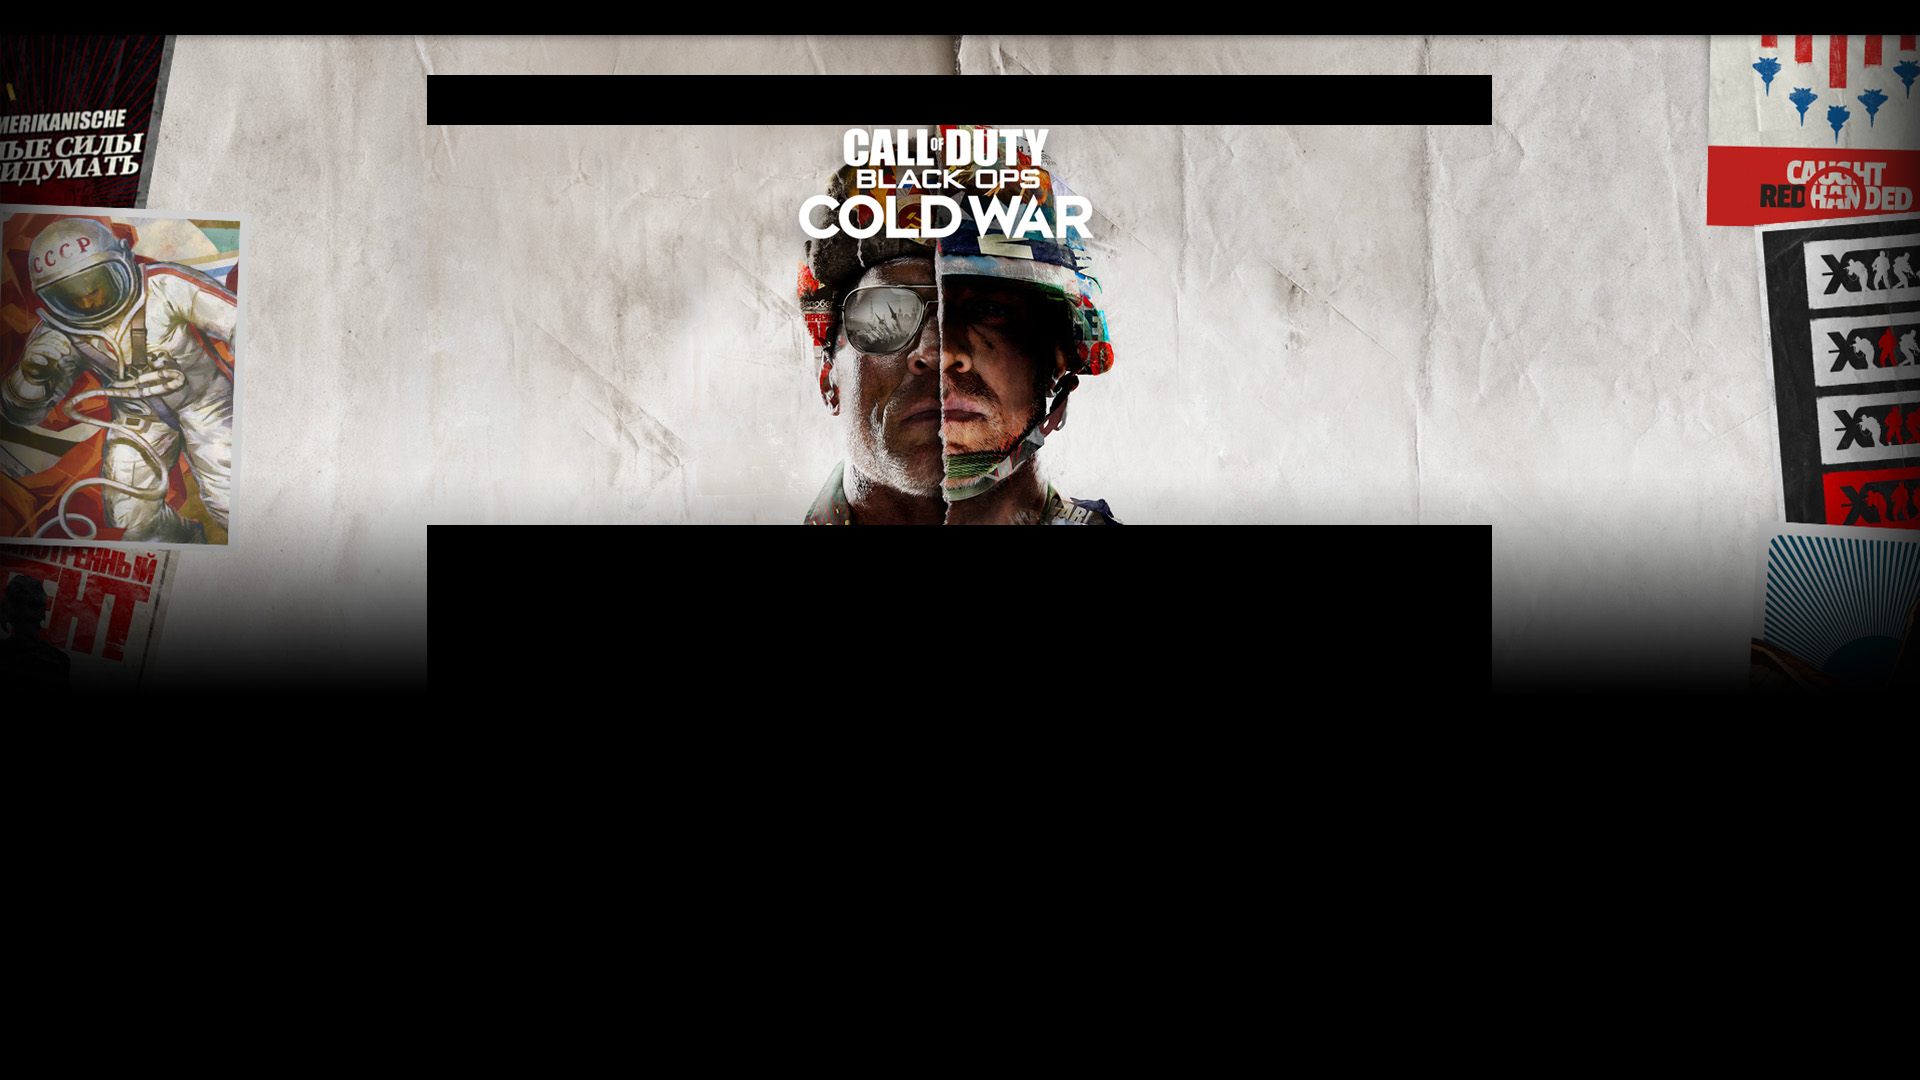 COD: Cold War [PC/Xbox One,X|S/PS4|PS5] video game